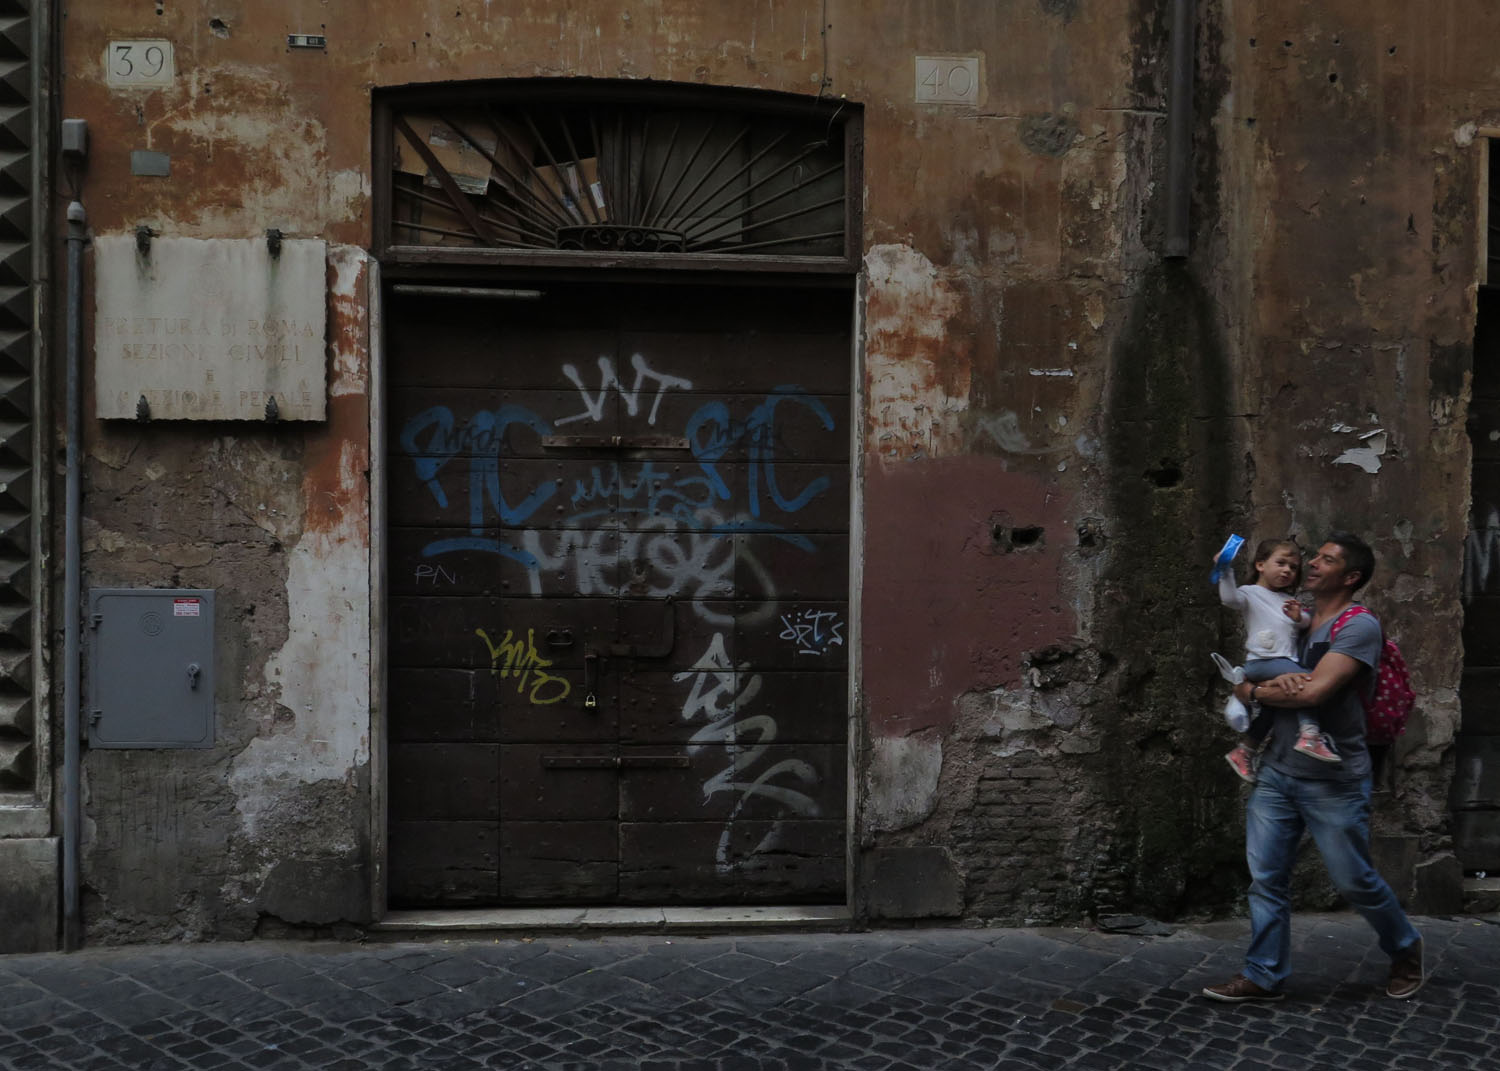 Italy-Rome-Street-Scenes-Father-Daughter